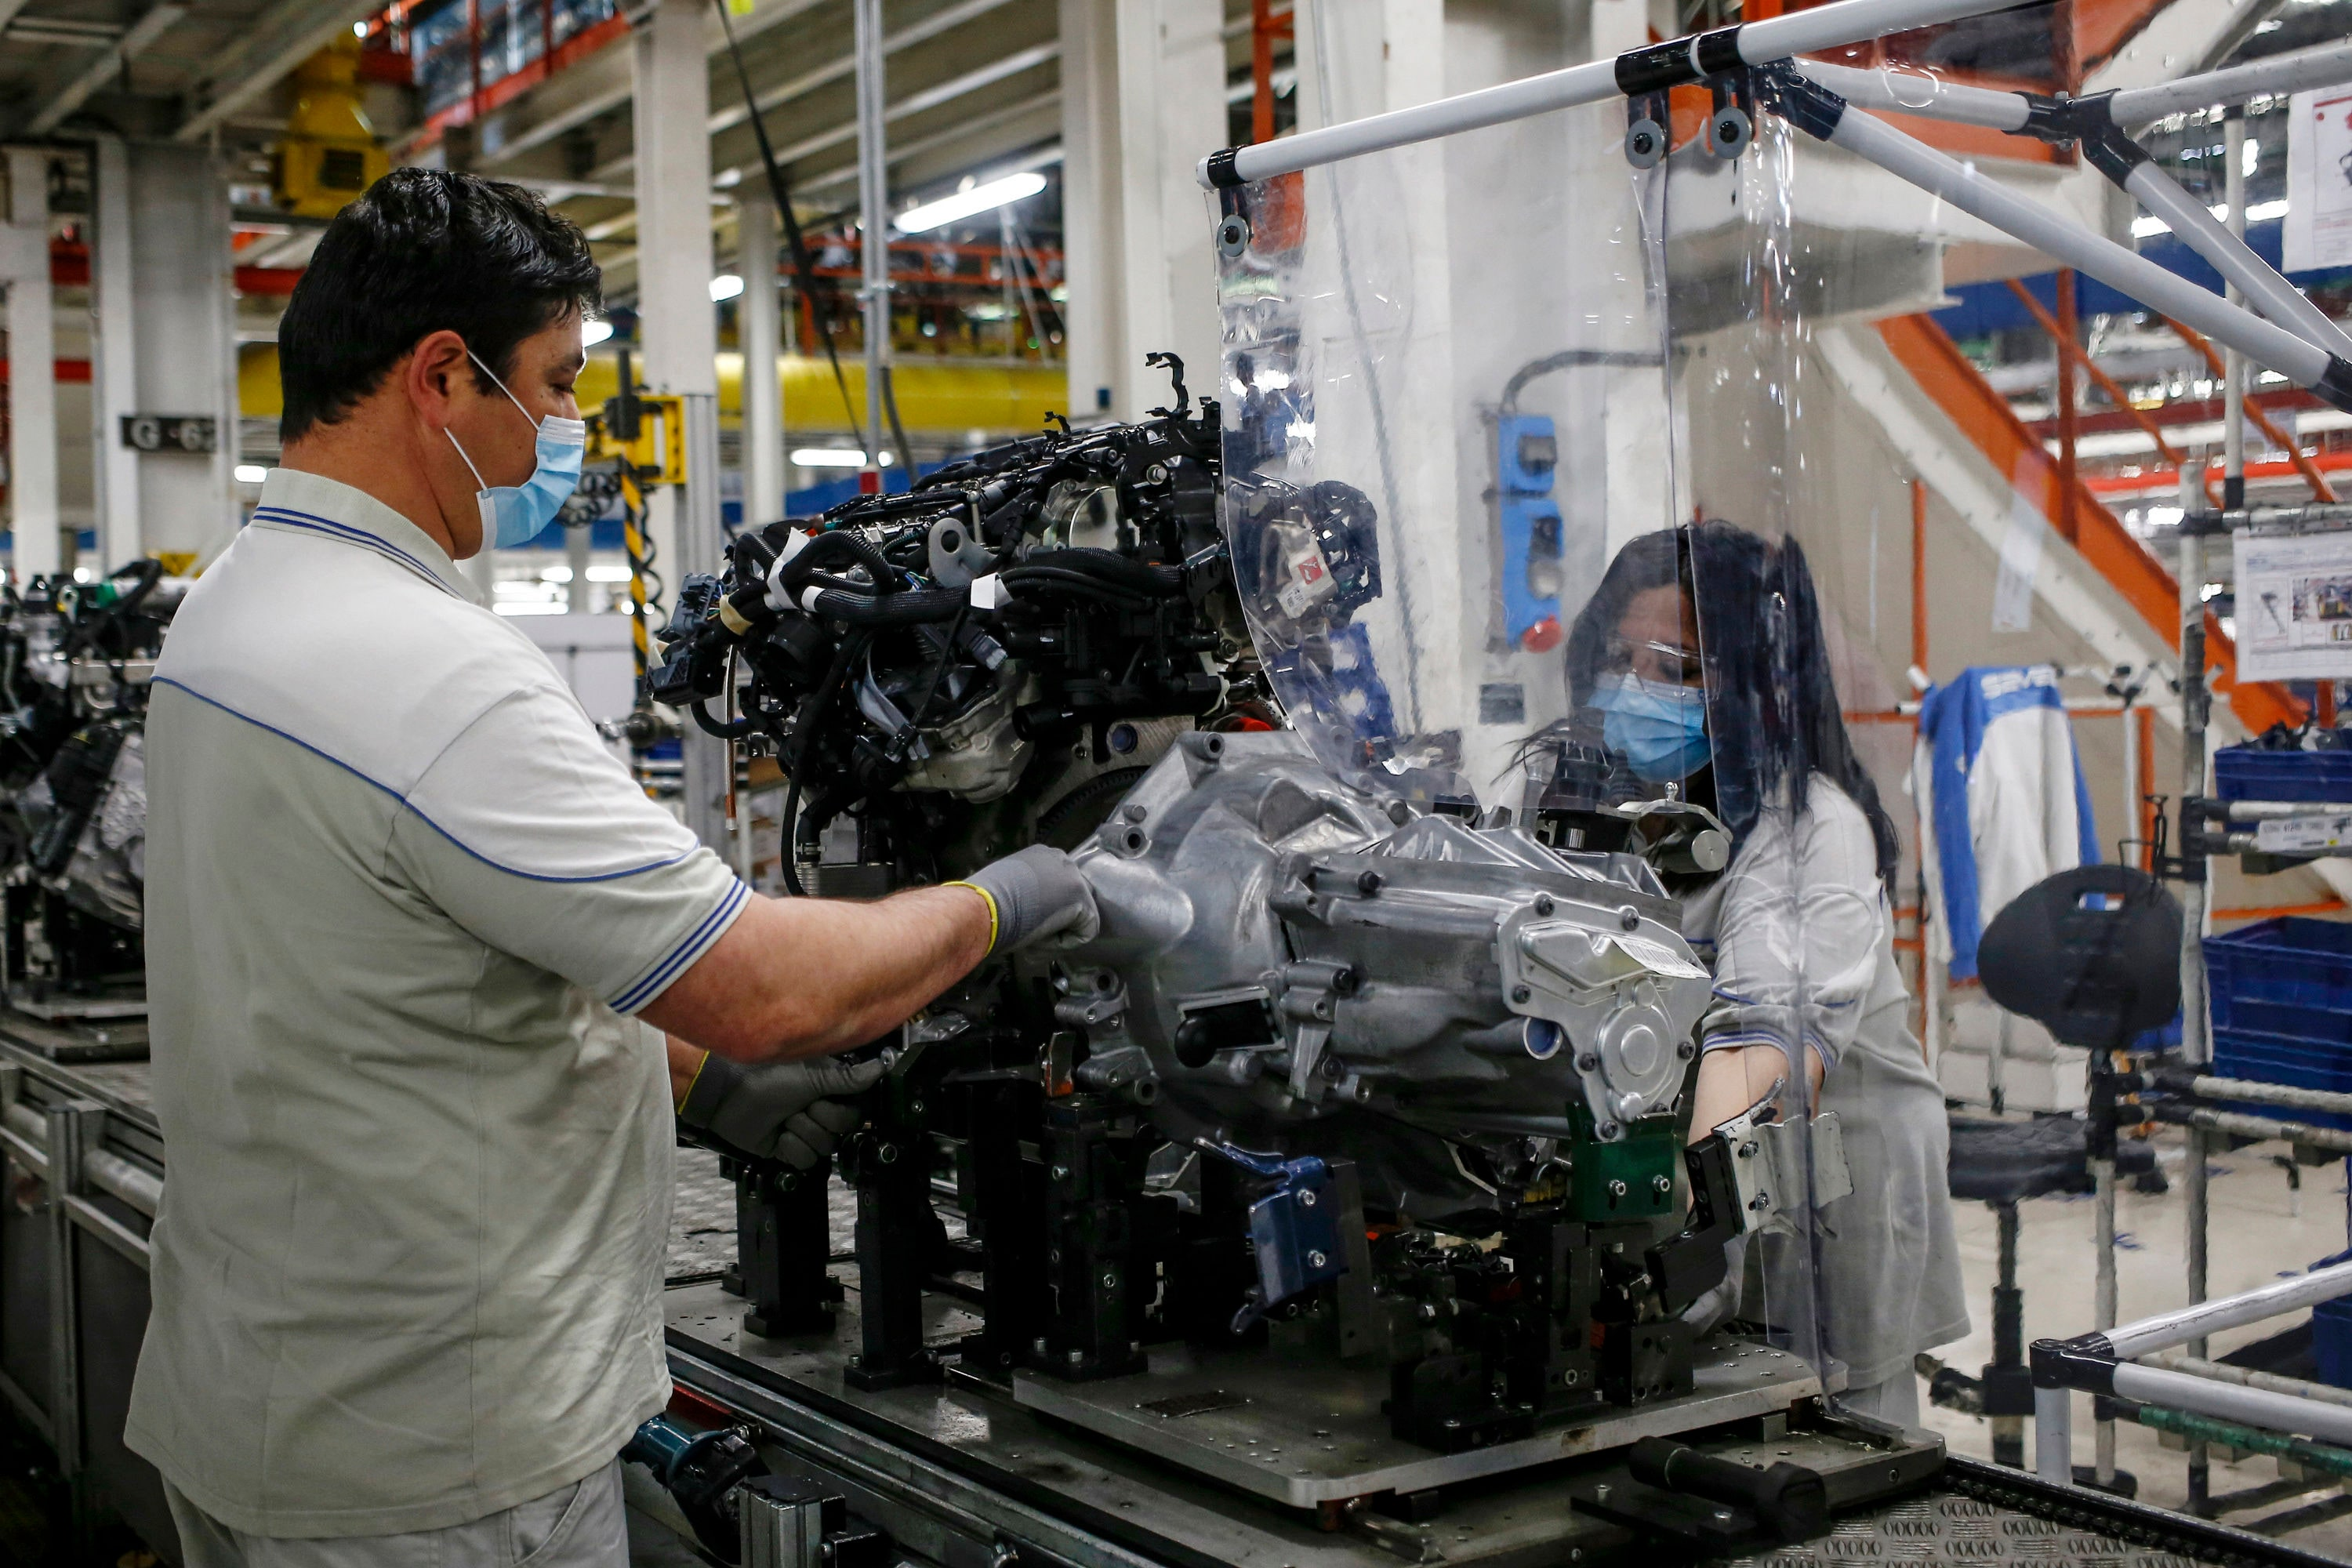 As Fiat resumes production work at its plant in Italy, preparations for worker safety have been given utmost priority. Plastic sheets have been laid between two workers needing to face each other to perform their task in order to help avoid transmission of infection. (AP)